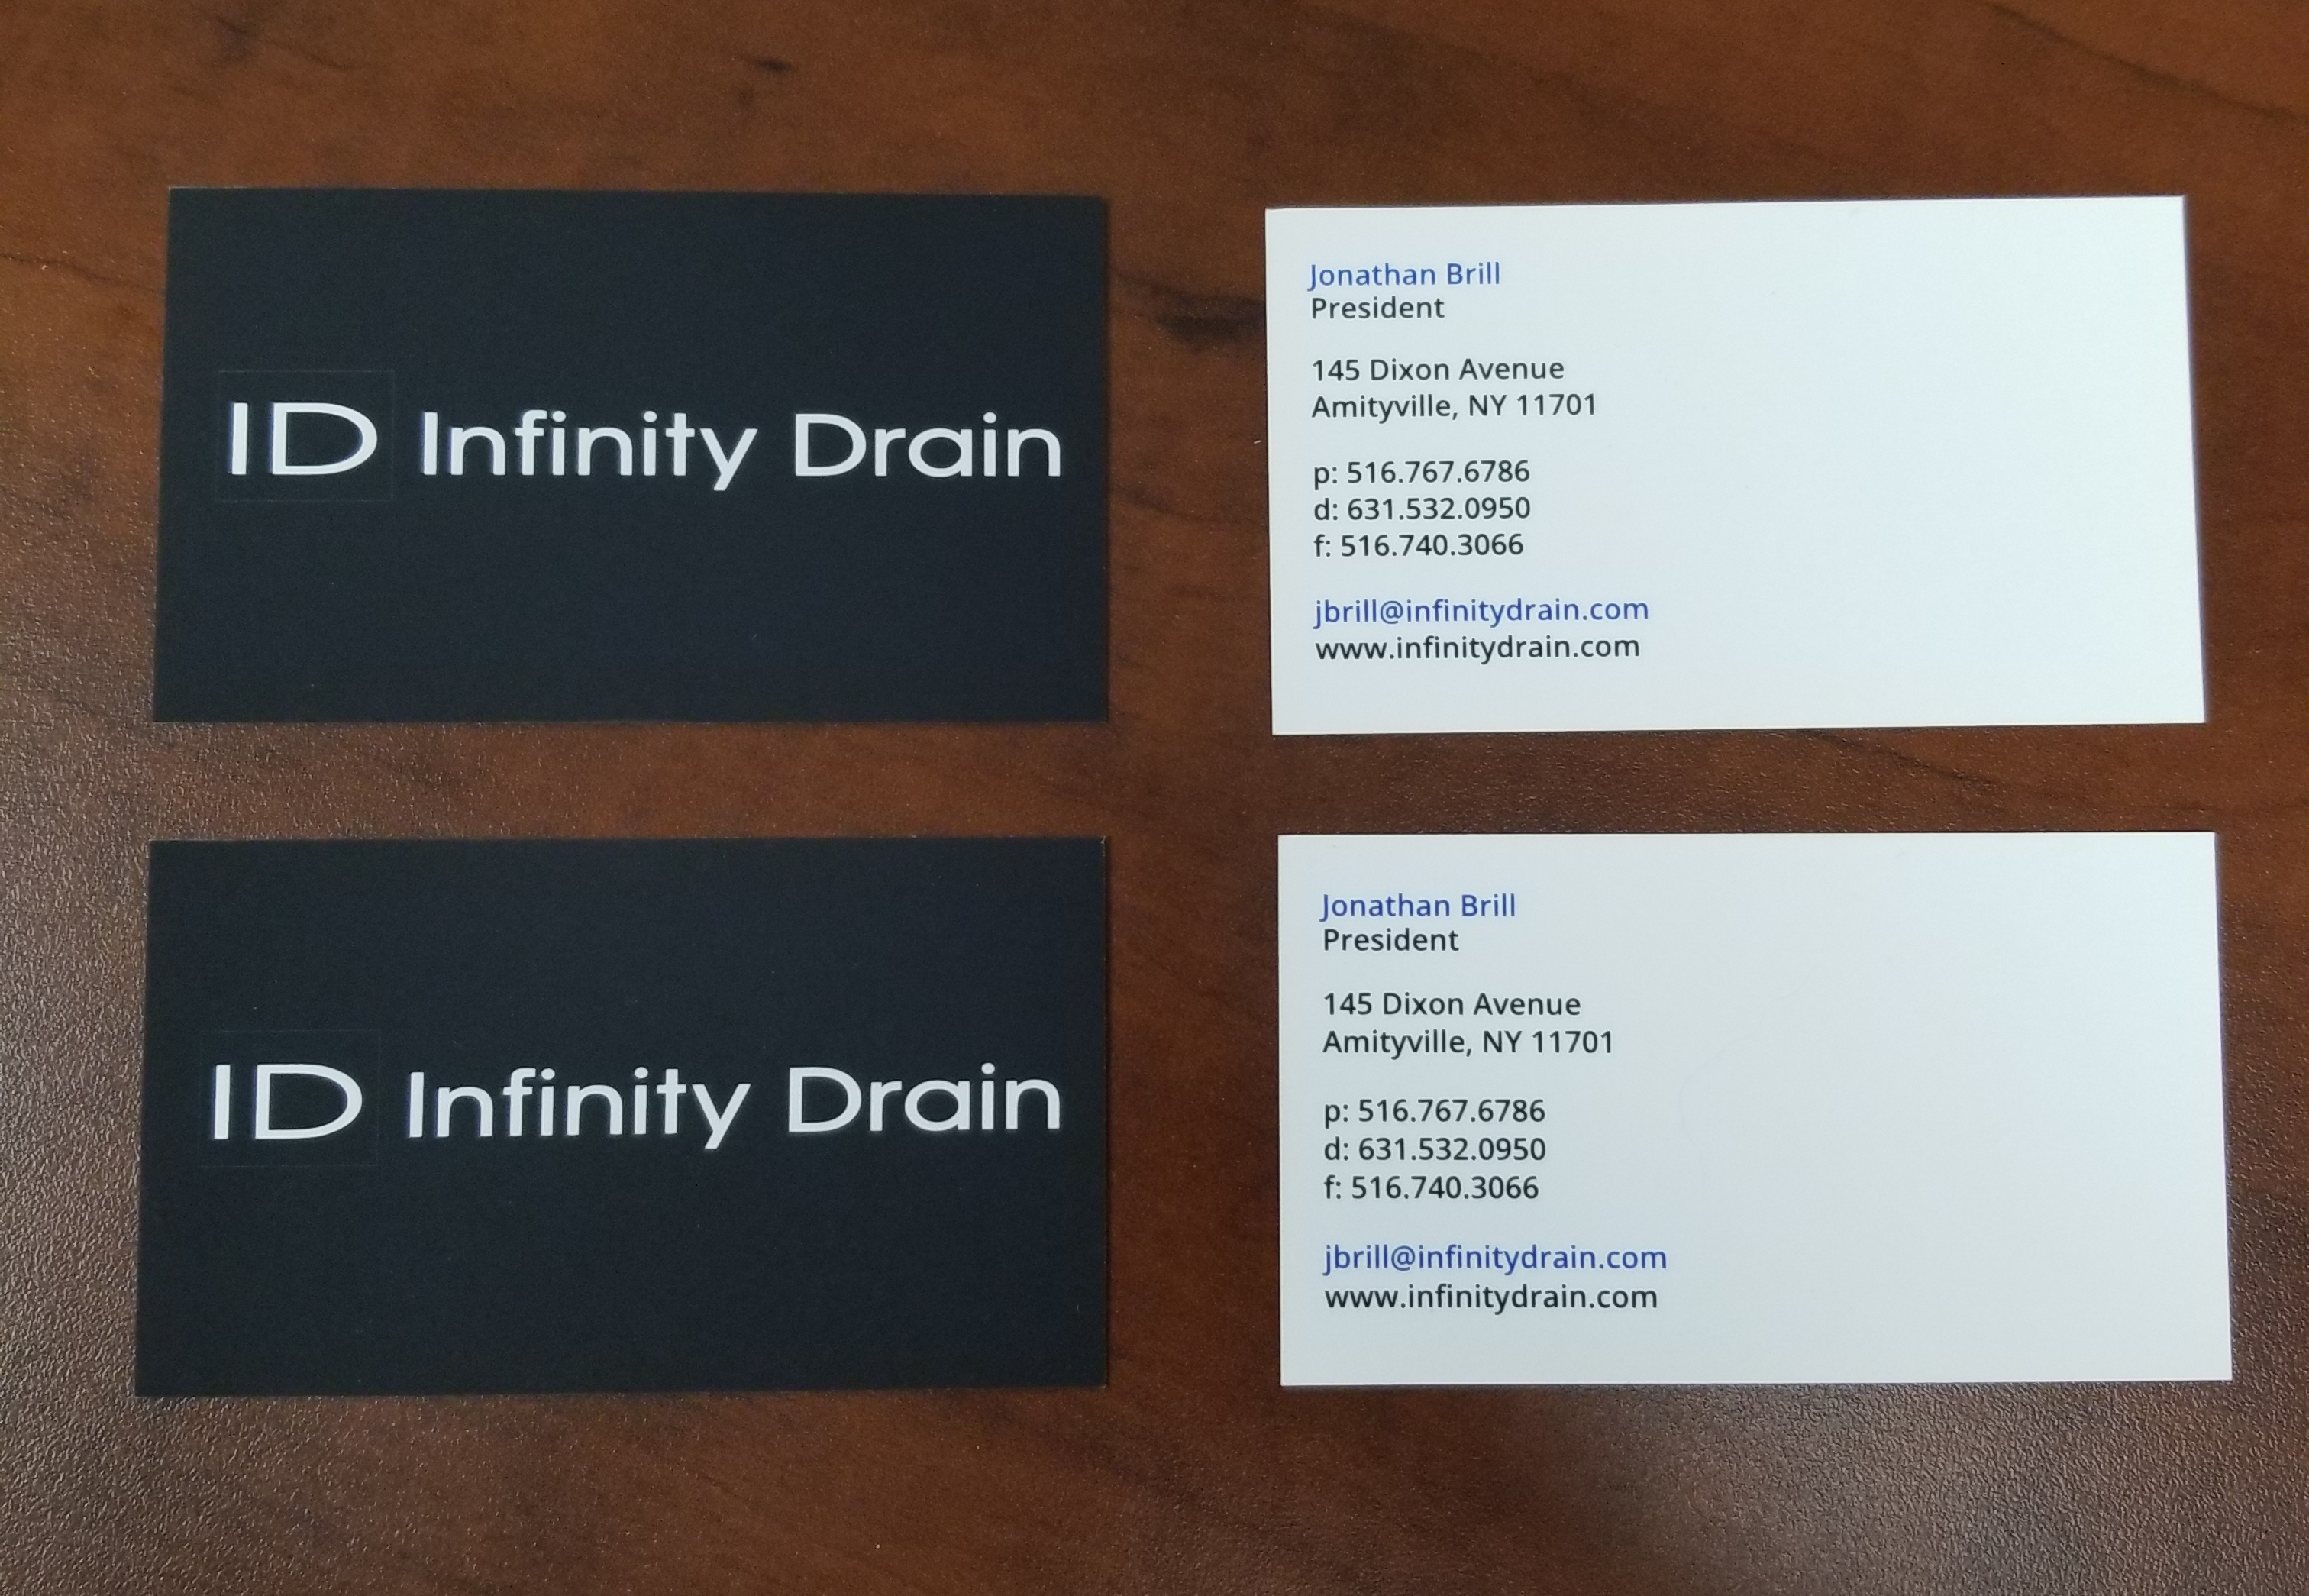 Business cards full service print shop merlin printing inc soft touch laminate business cards colourmoves